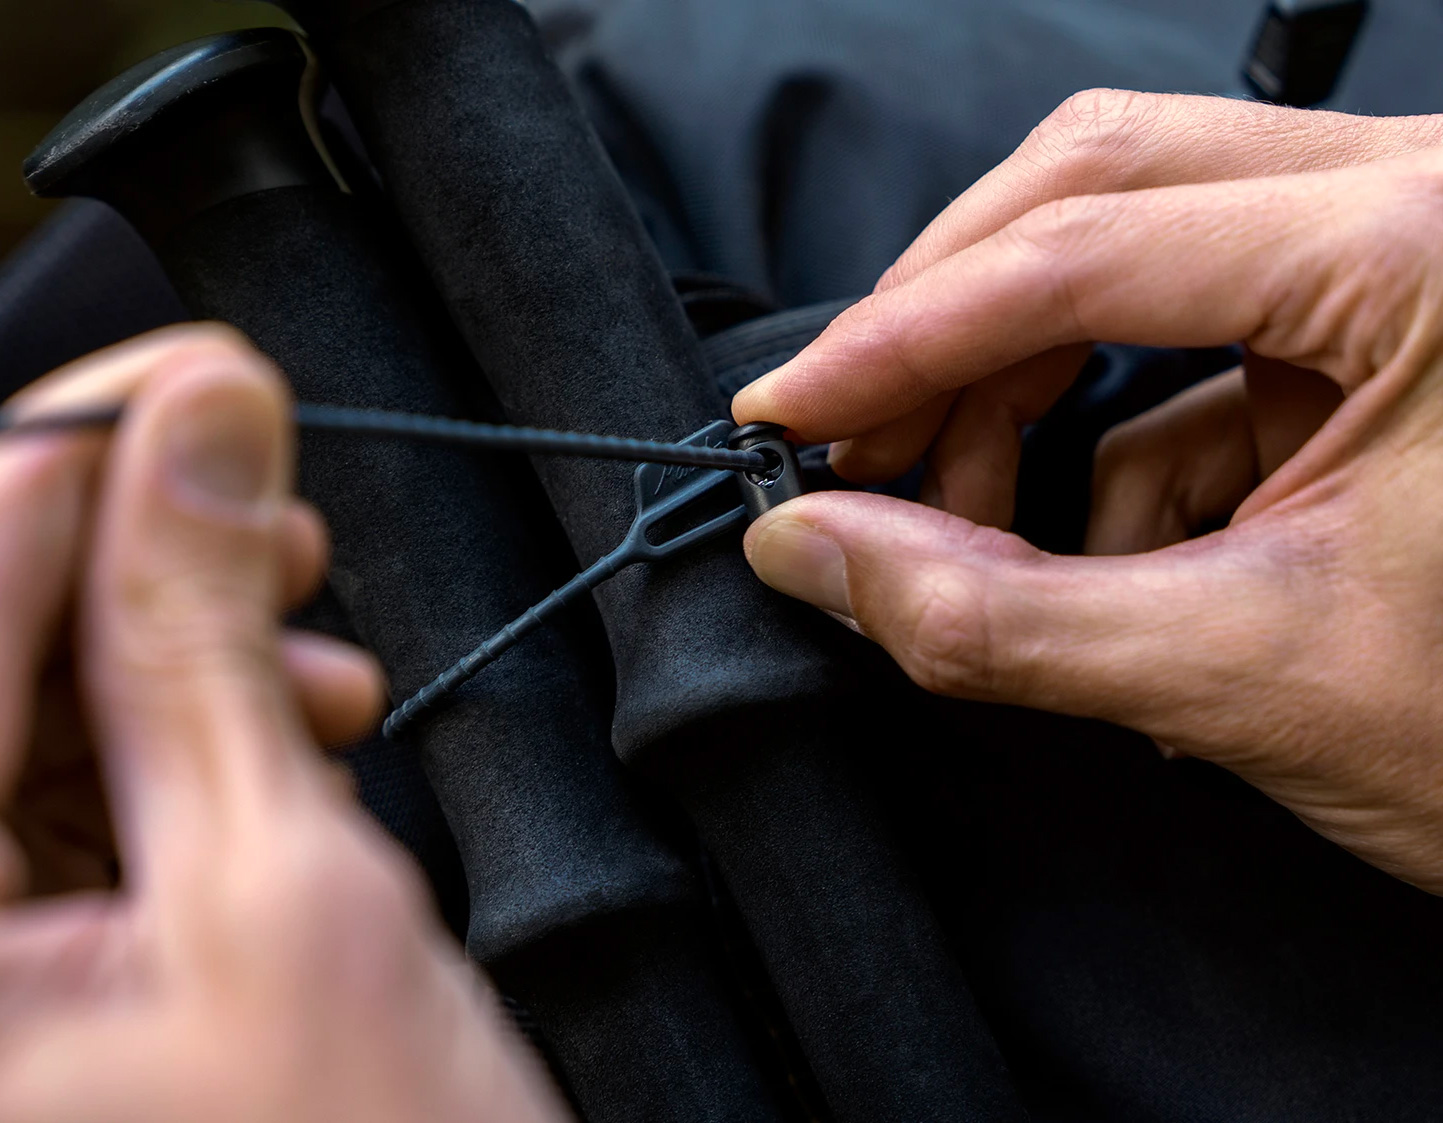 Matador's Reusable Rubber Zip Ties Eliminate Waste at werd.com